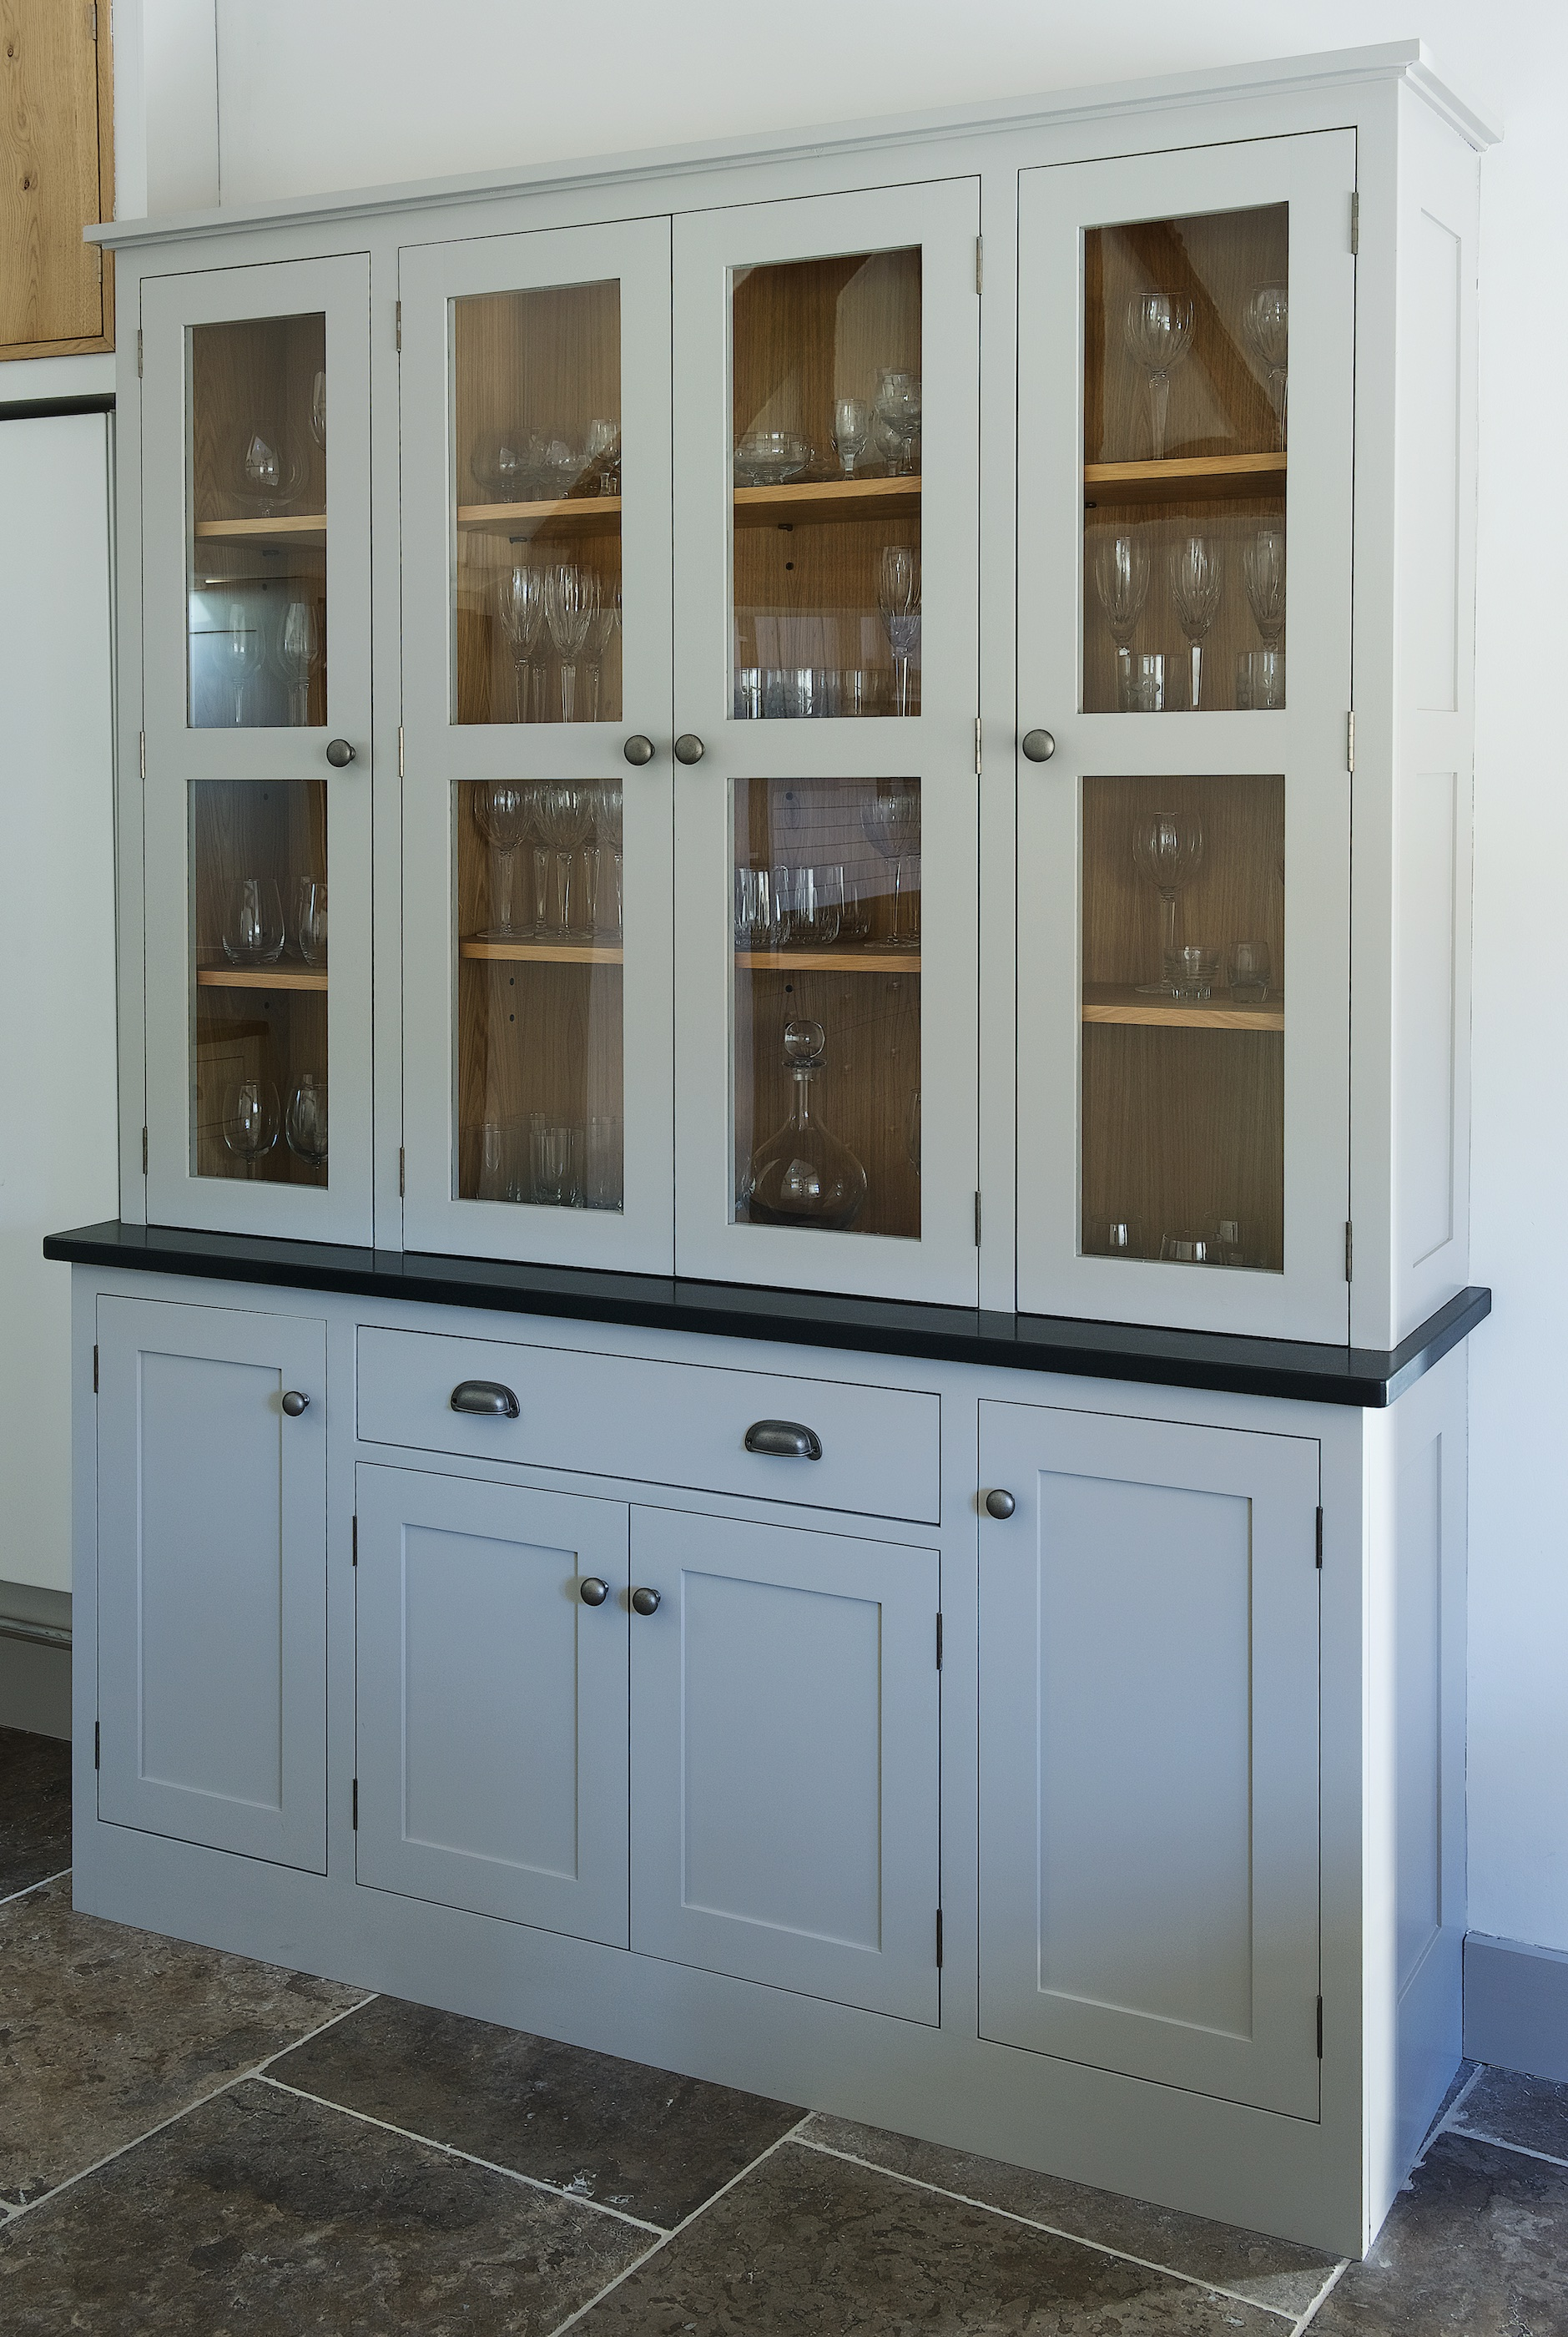 Grey bespoke french dresser with pewter hardware and glass display doors with solid oak shelving and closed cabinets below.